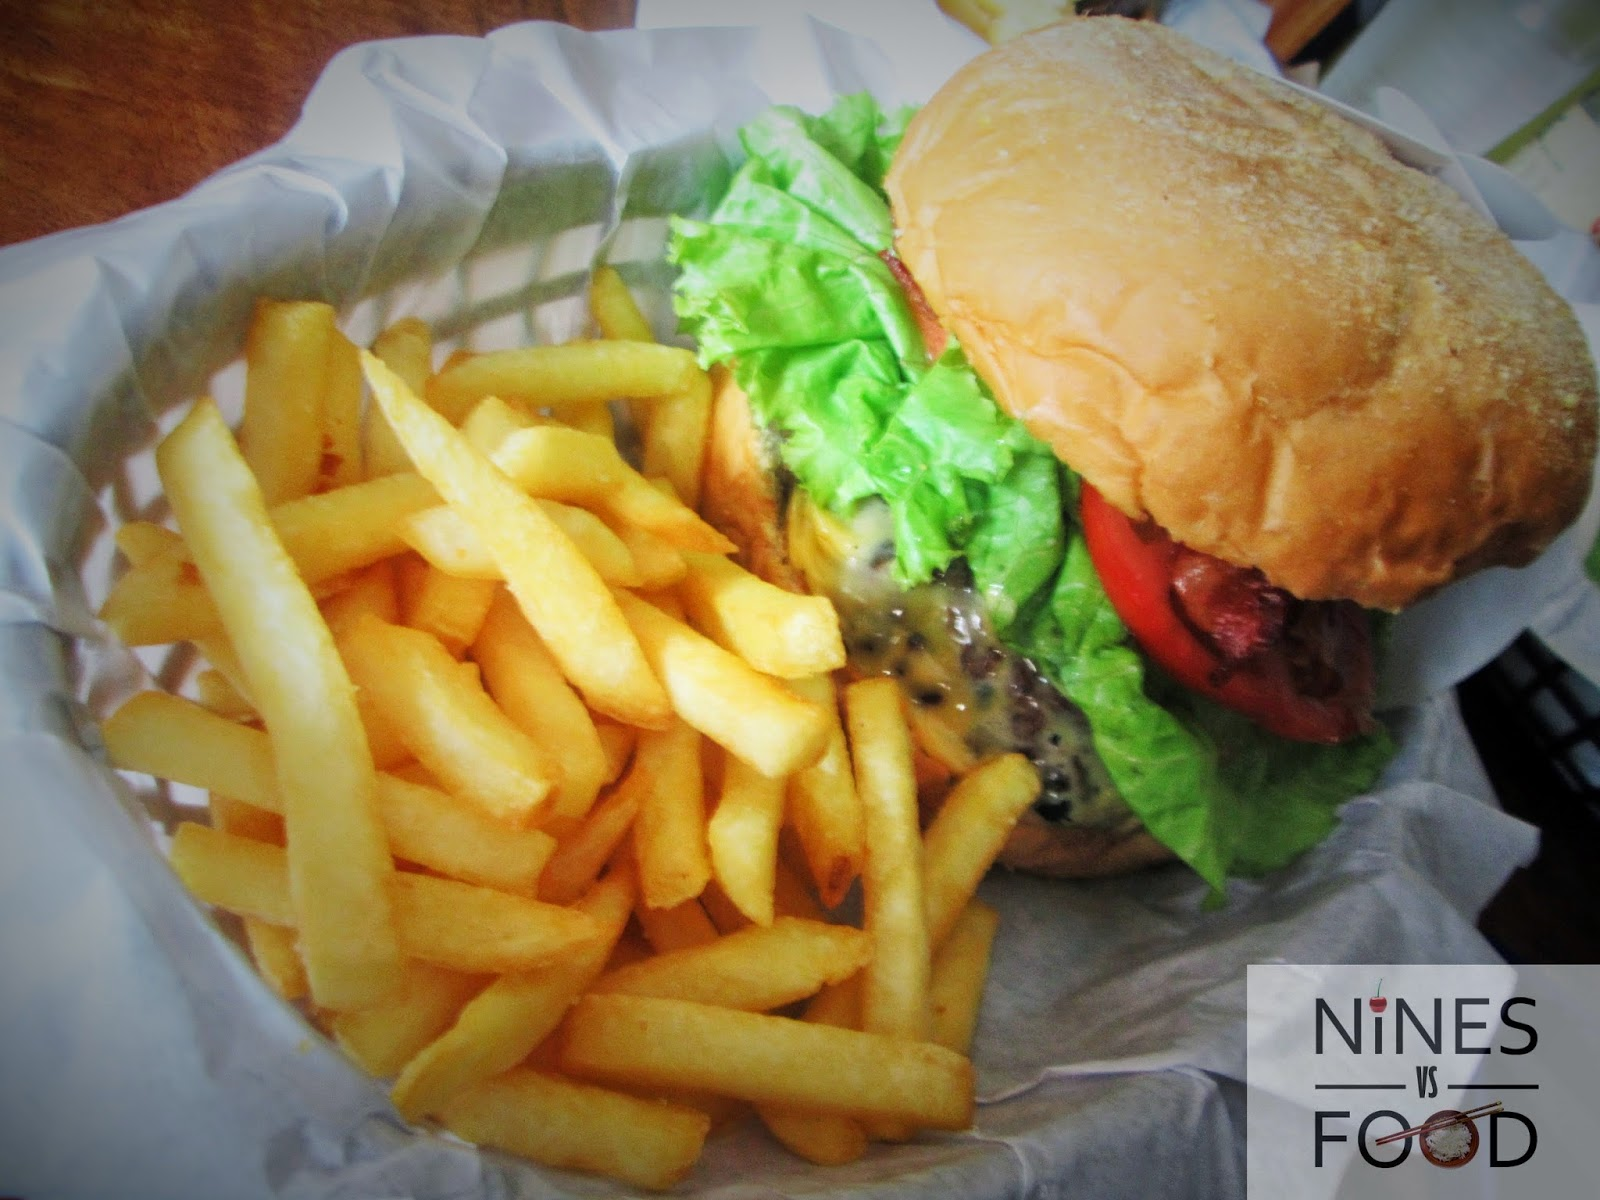 Nines vs. Food - Burger Culture Tomas Morato-10.jpg